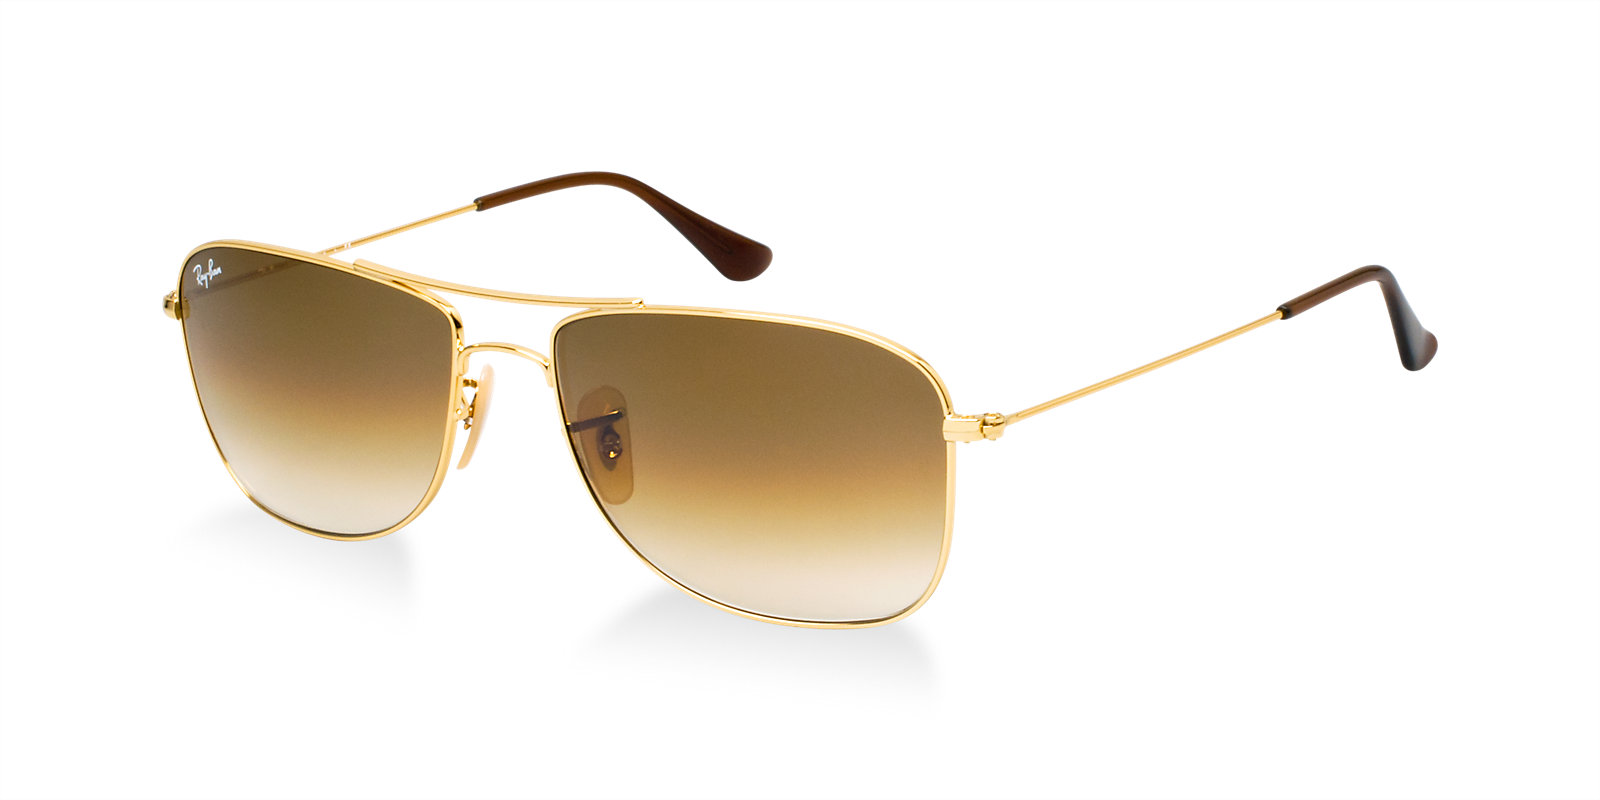 Ray-Ban-Sunglasses-for-Men (29)